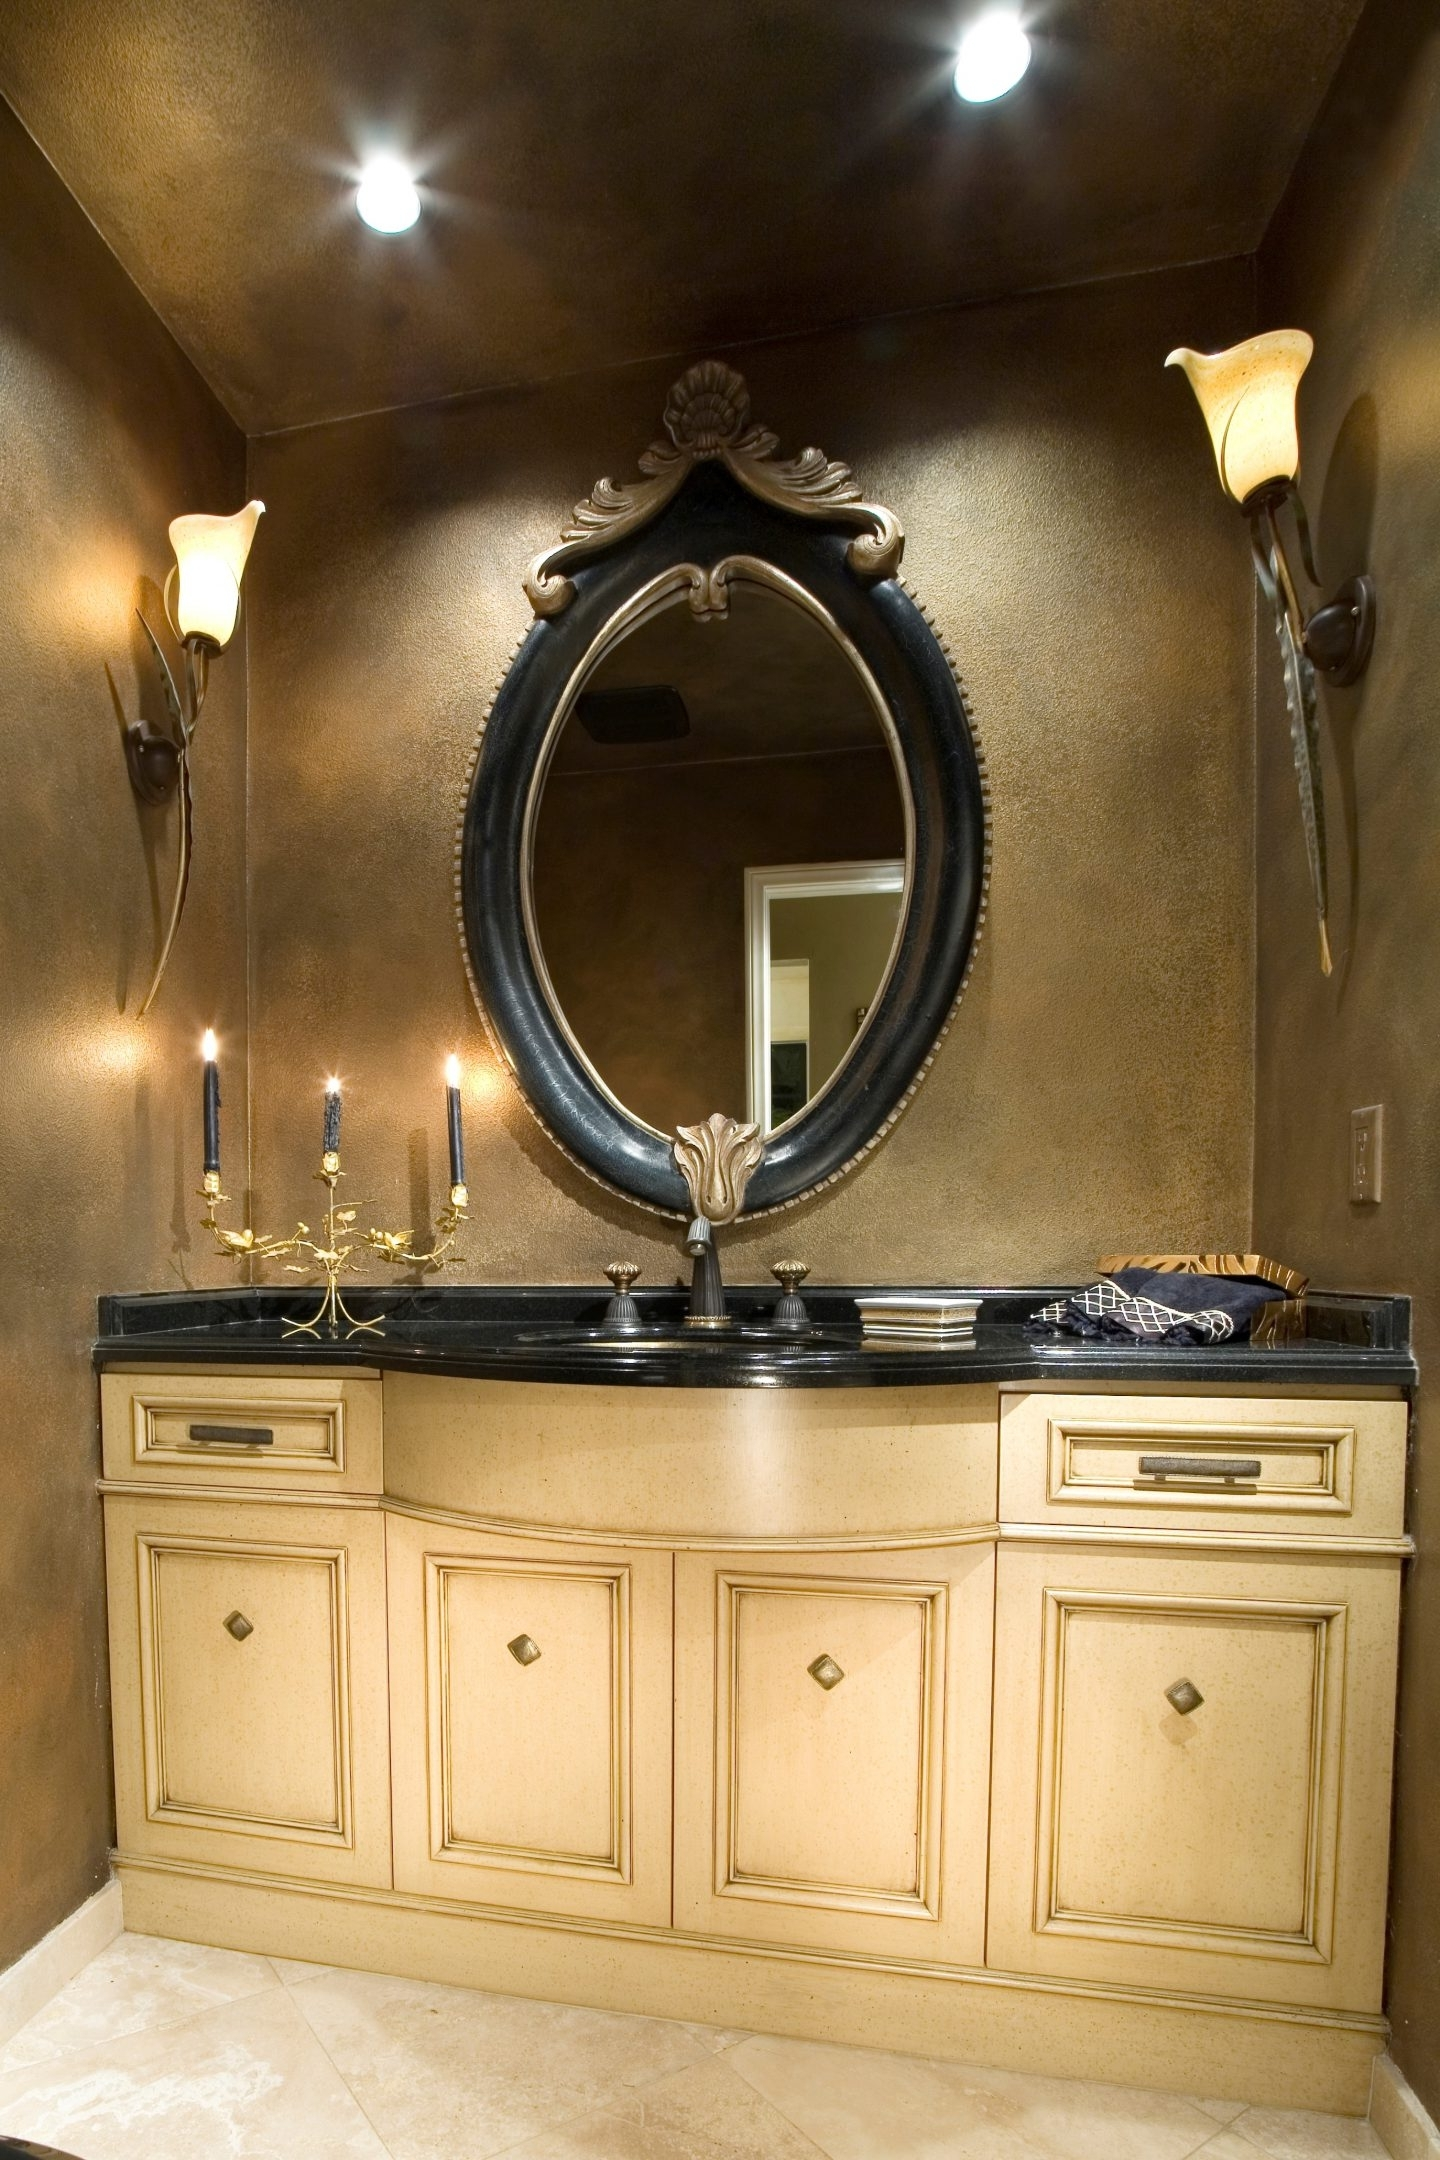 Fashionable Chandelier Bathroom Vanity Lighting Adorable Sconces With White For Chandelier Bathroom Vanity Lighting (View 14 of 20)